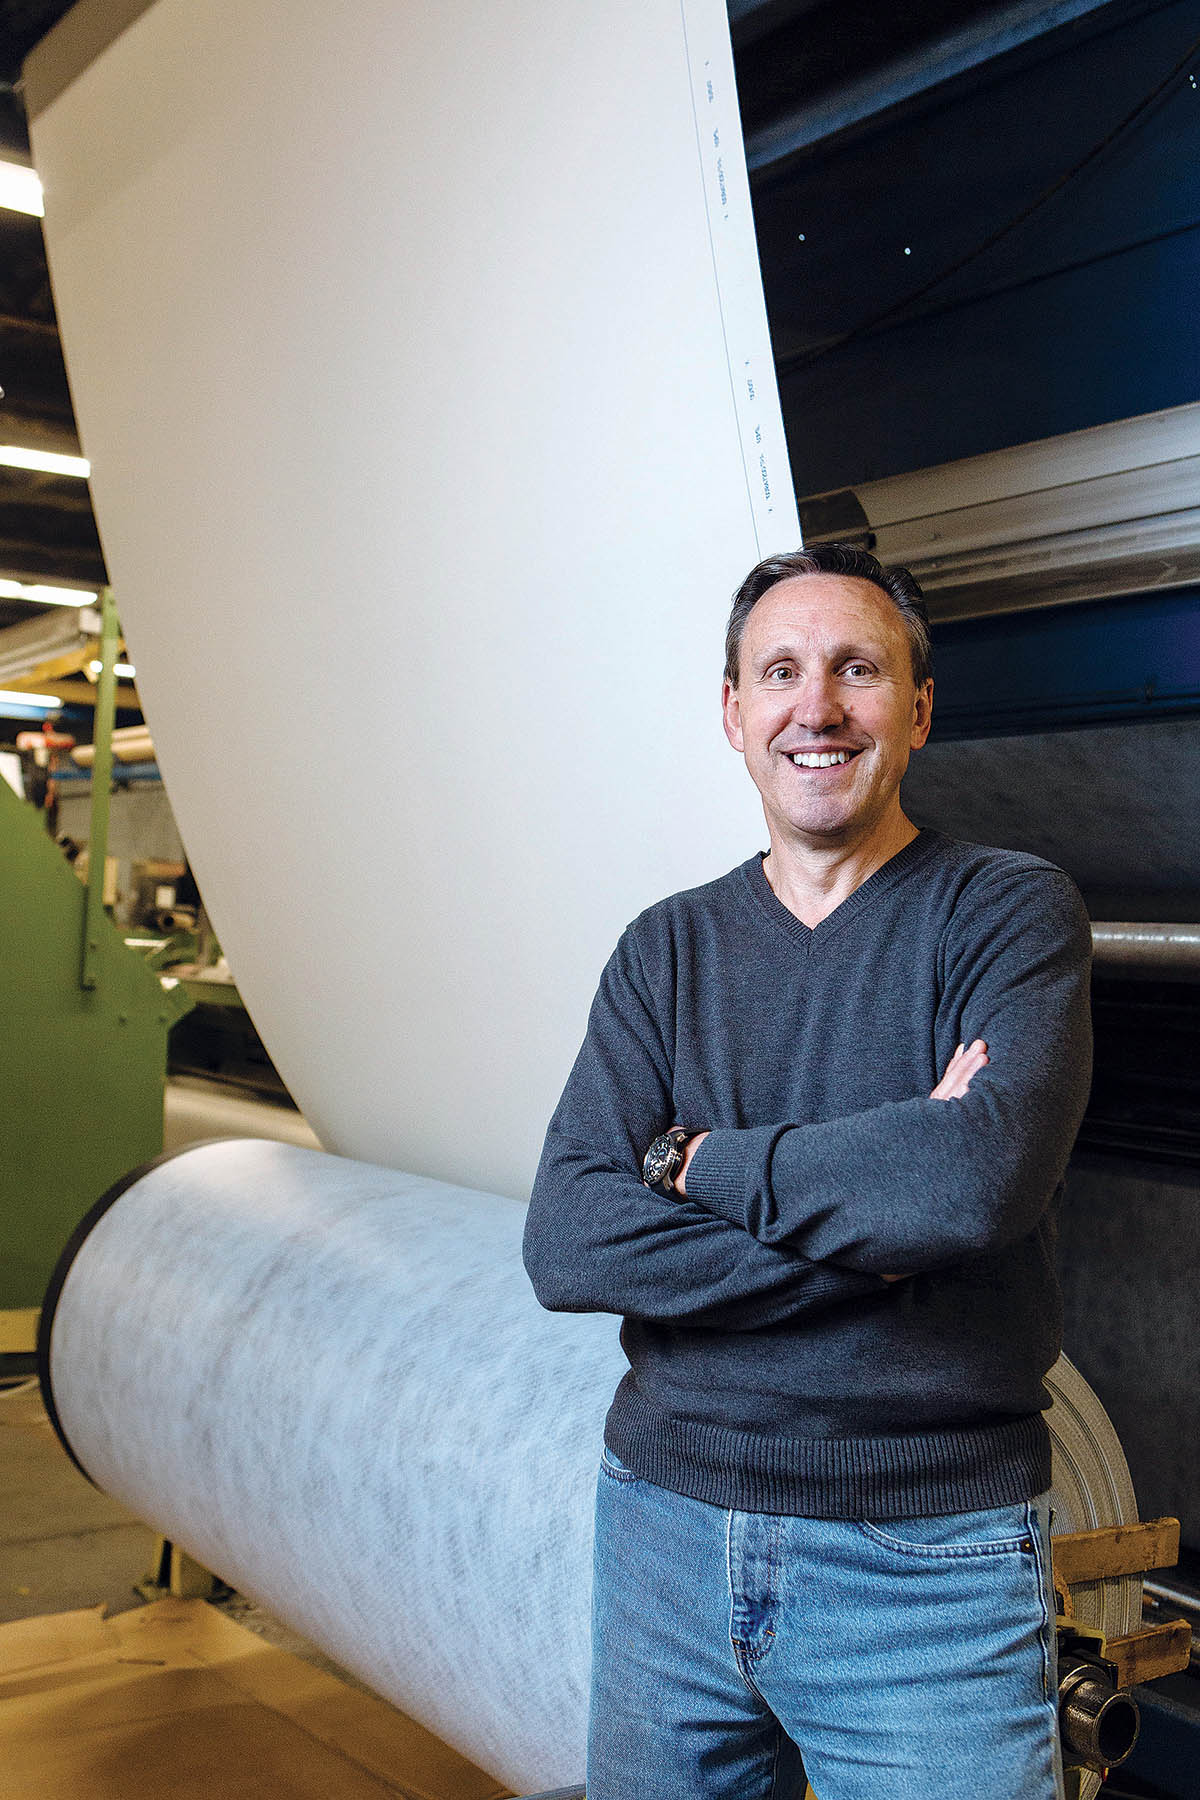 Prior to being named CEO and president of Cooley Group in 2011, Daniel Dwight both worked at and led large companies, ranging from General Electric to Tatum to Kronos Advanced Technologies, all high-tech, growth enterprises. / PBN PHOTO/RUPERT WHITELEY